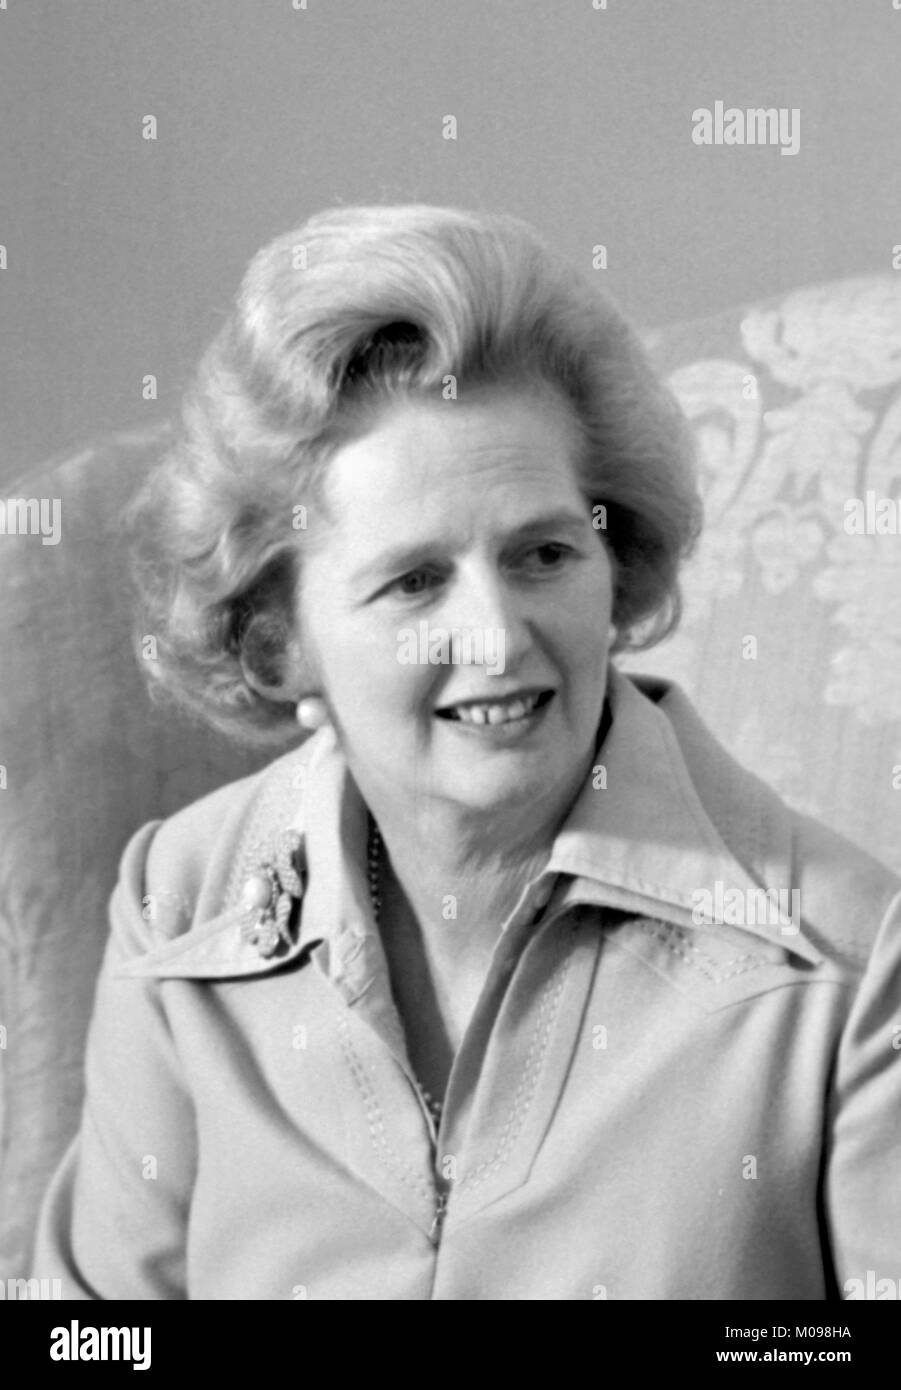 Margaret Thatcher (1925-2013). Portrait of the British Prime Minister in September 1975, photo by Marion S Trikosko. Stock Photo